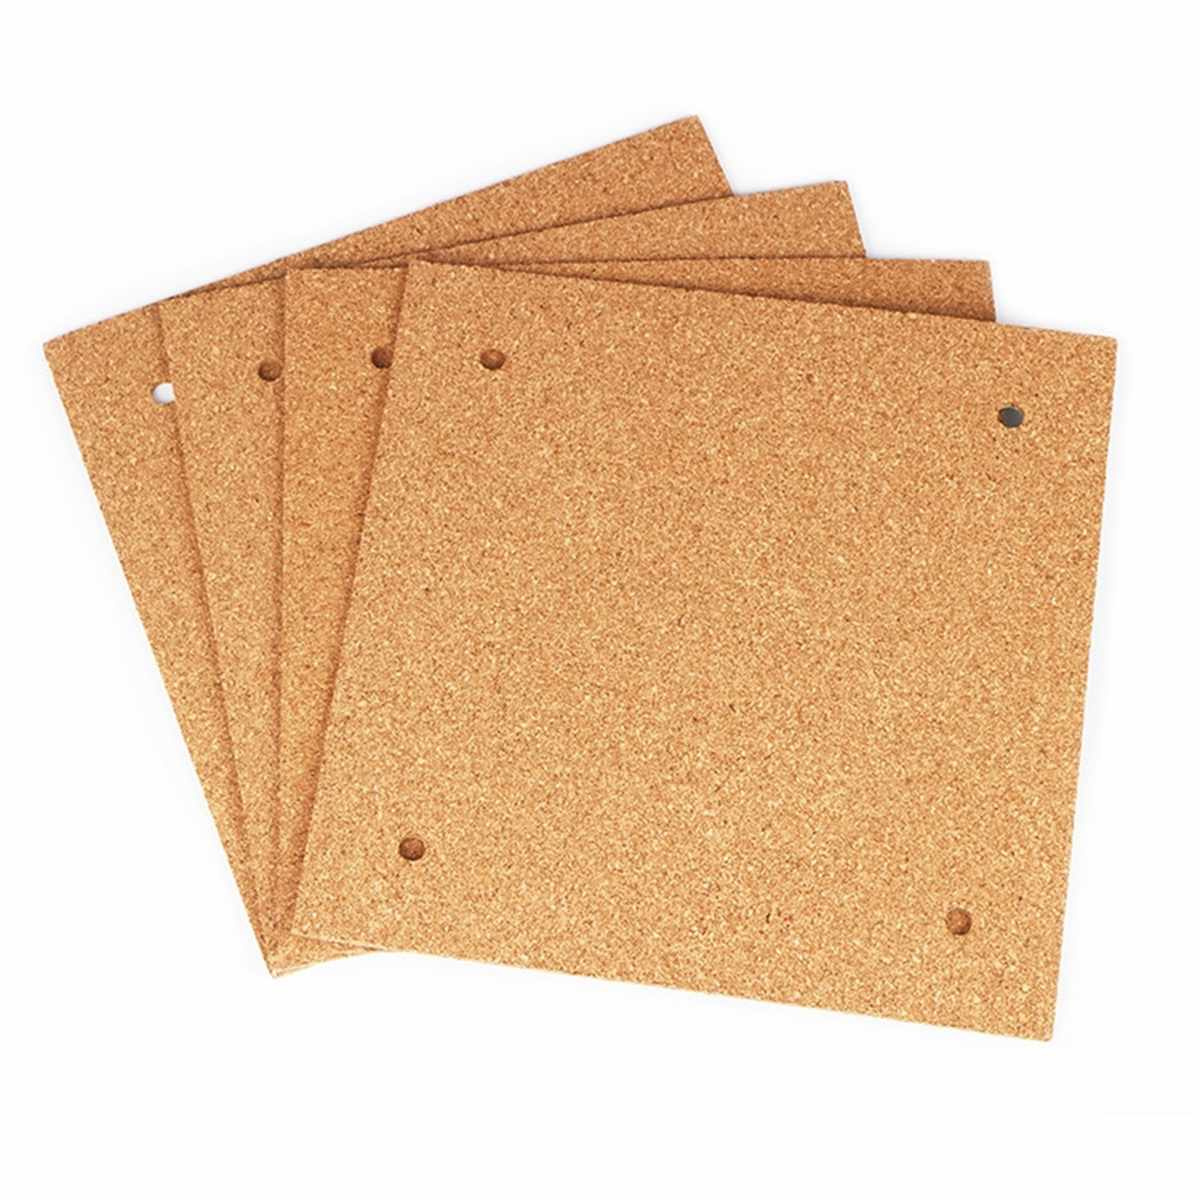 1PCS 310*310*3mm Square Insulation Cork Sheet Heating Pad for CR-10 3D Printer Accessory Hotbed Thermal Cork Plate